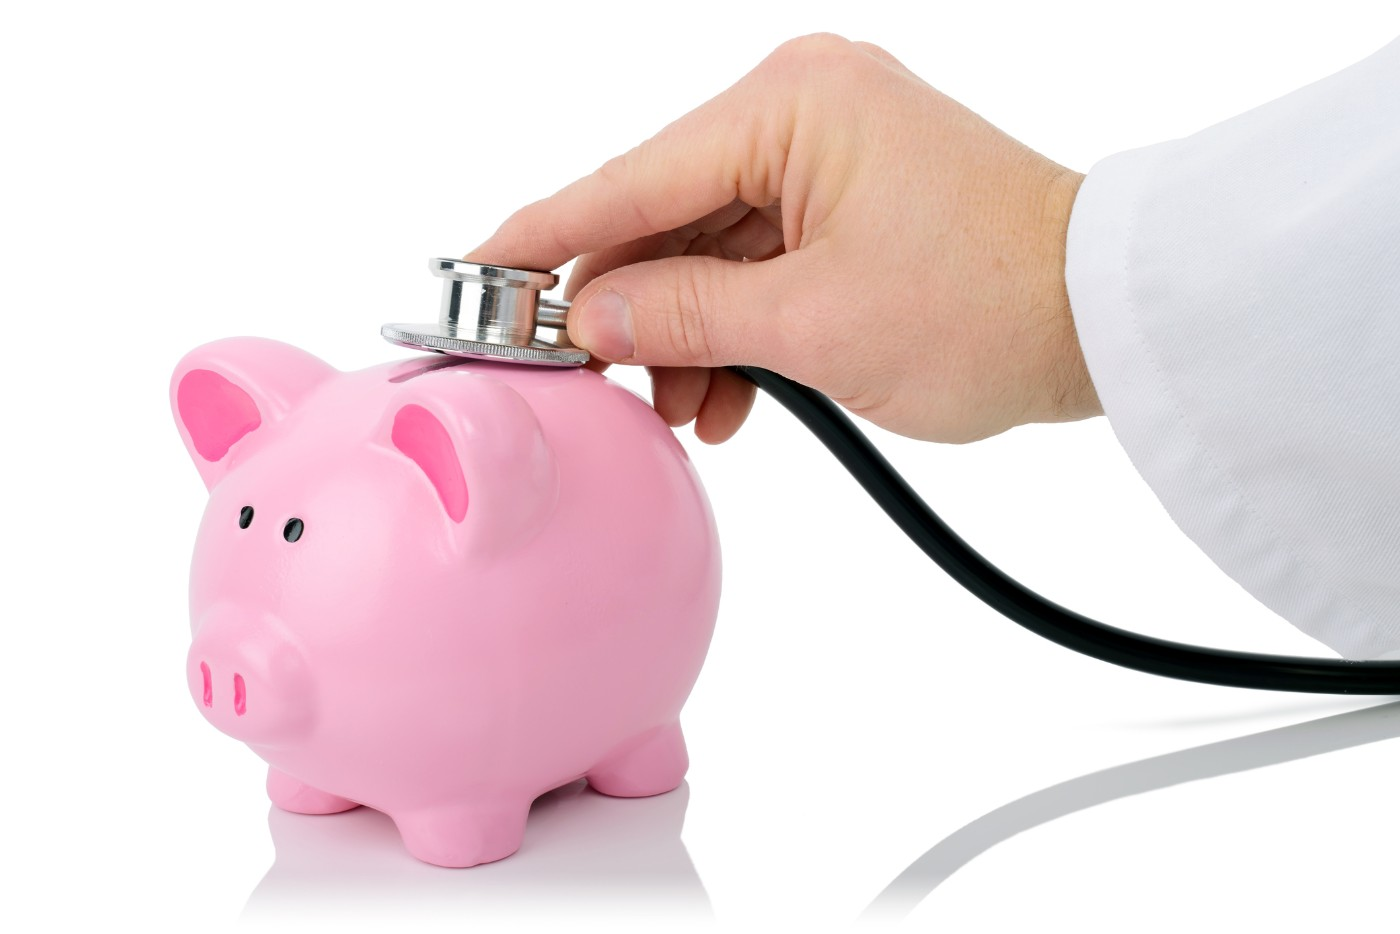 https://tickertapecdn.tdameritrade.com/assets/images/pages/md/Financial checkup: Assessing your financial health